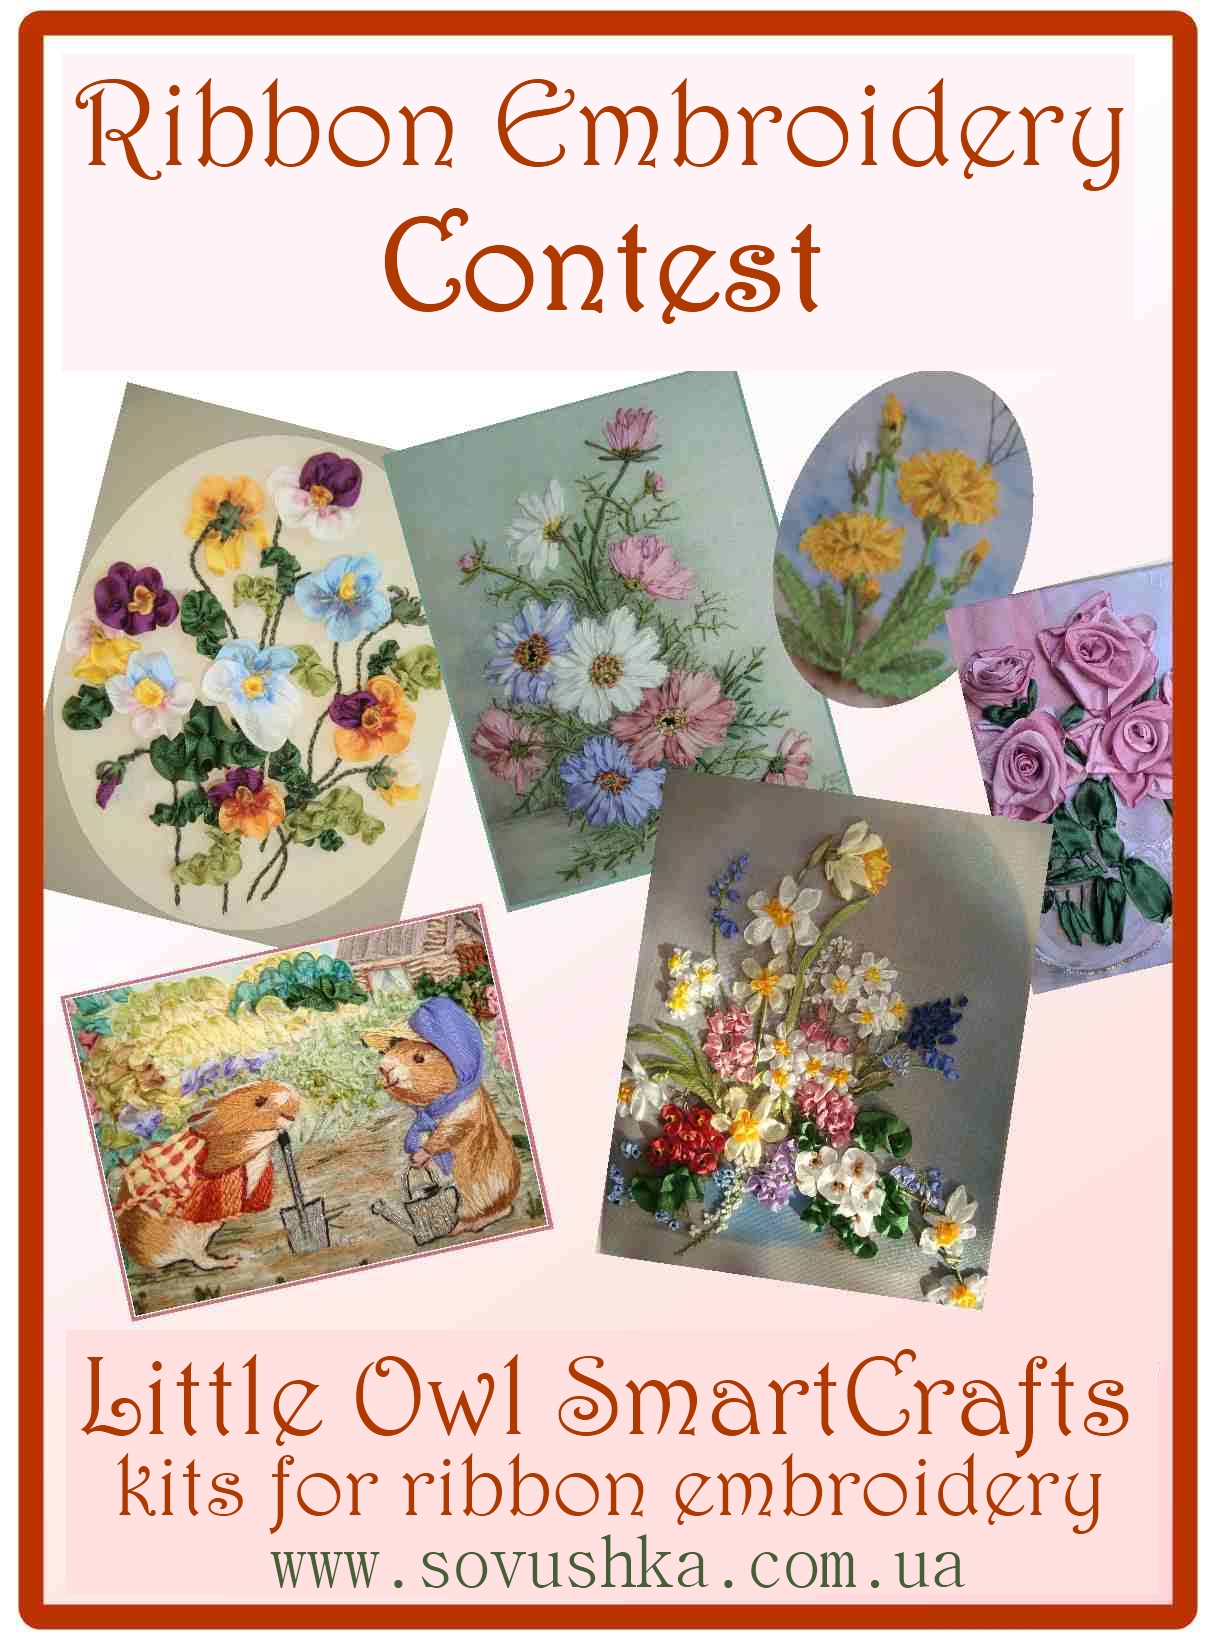 ribbon embroidery contest, show, design, certificate, silk ribbon contest